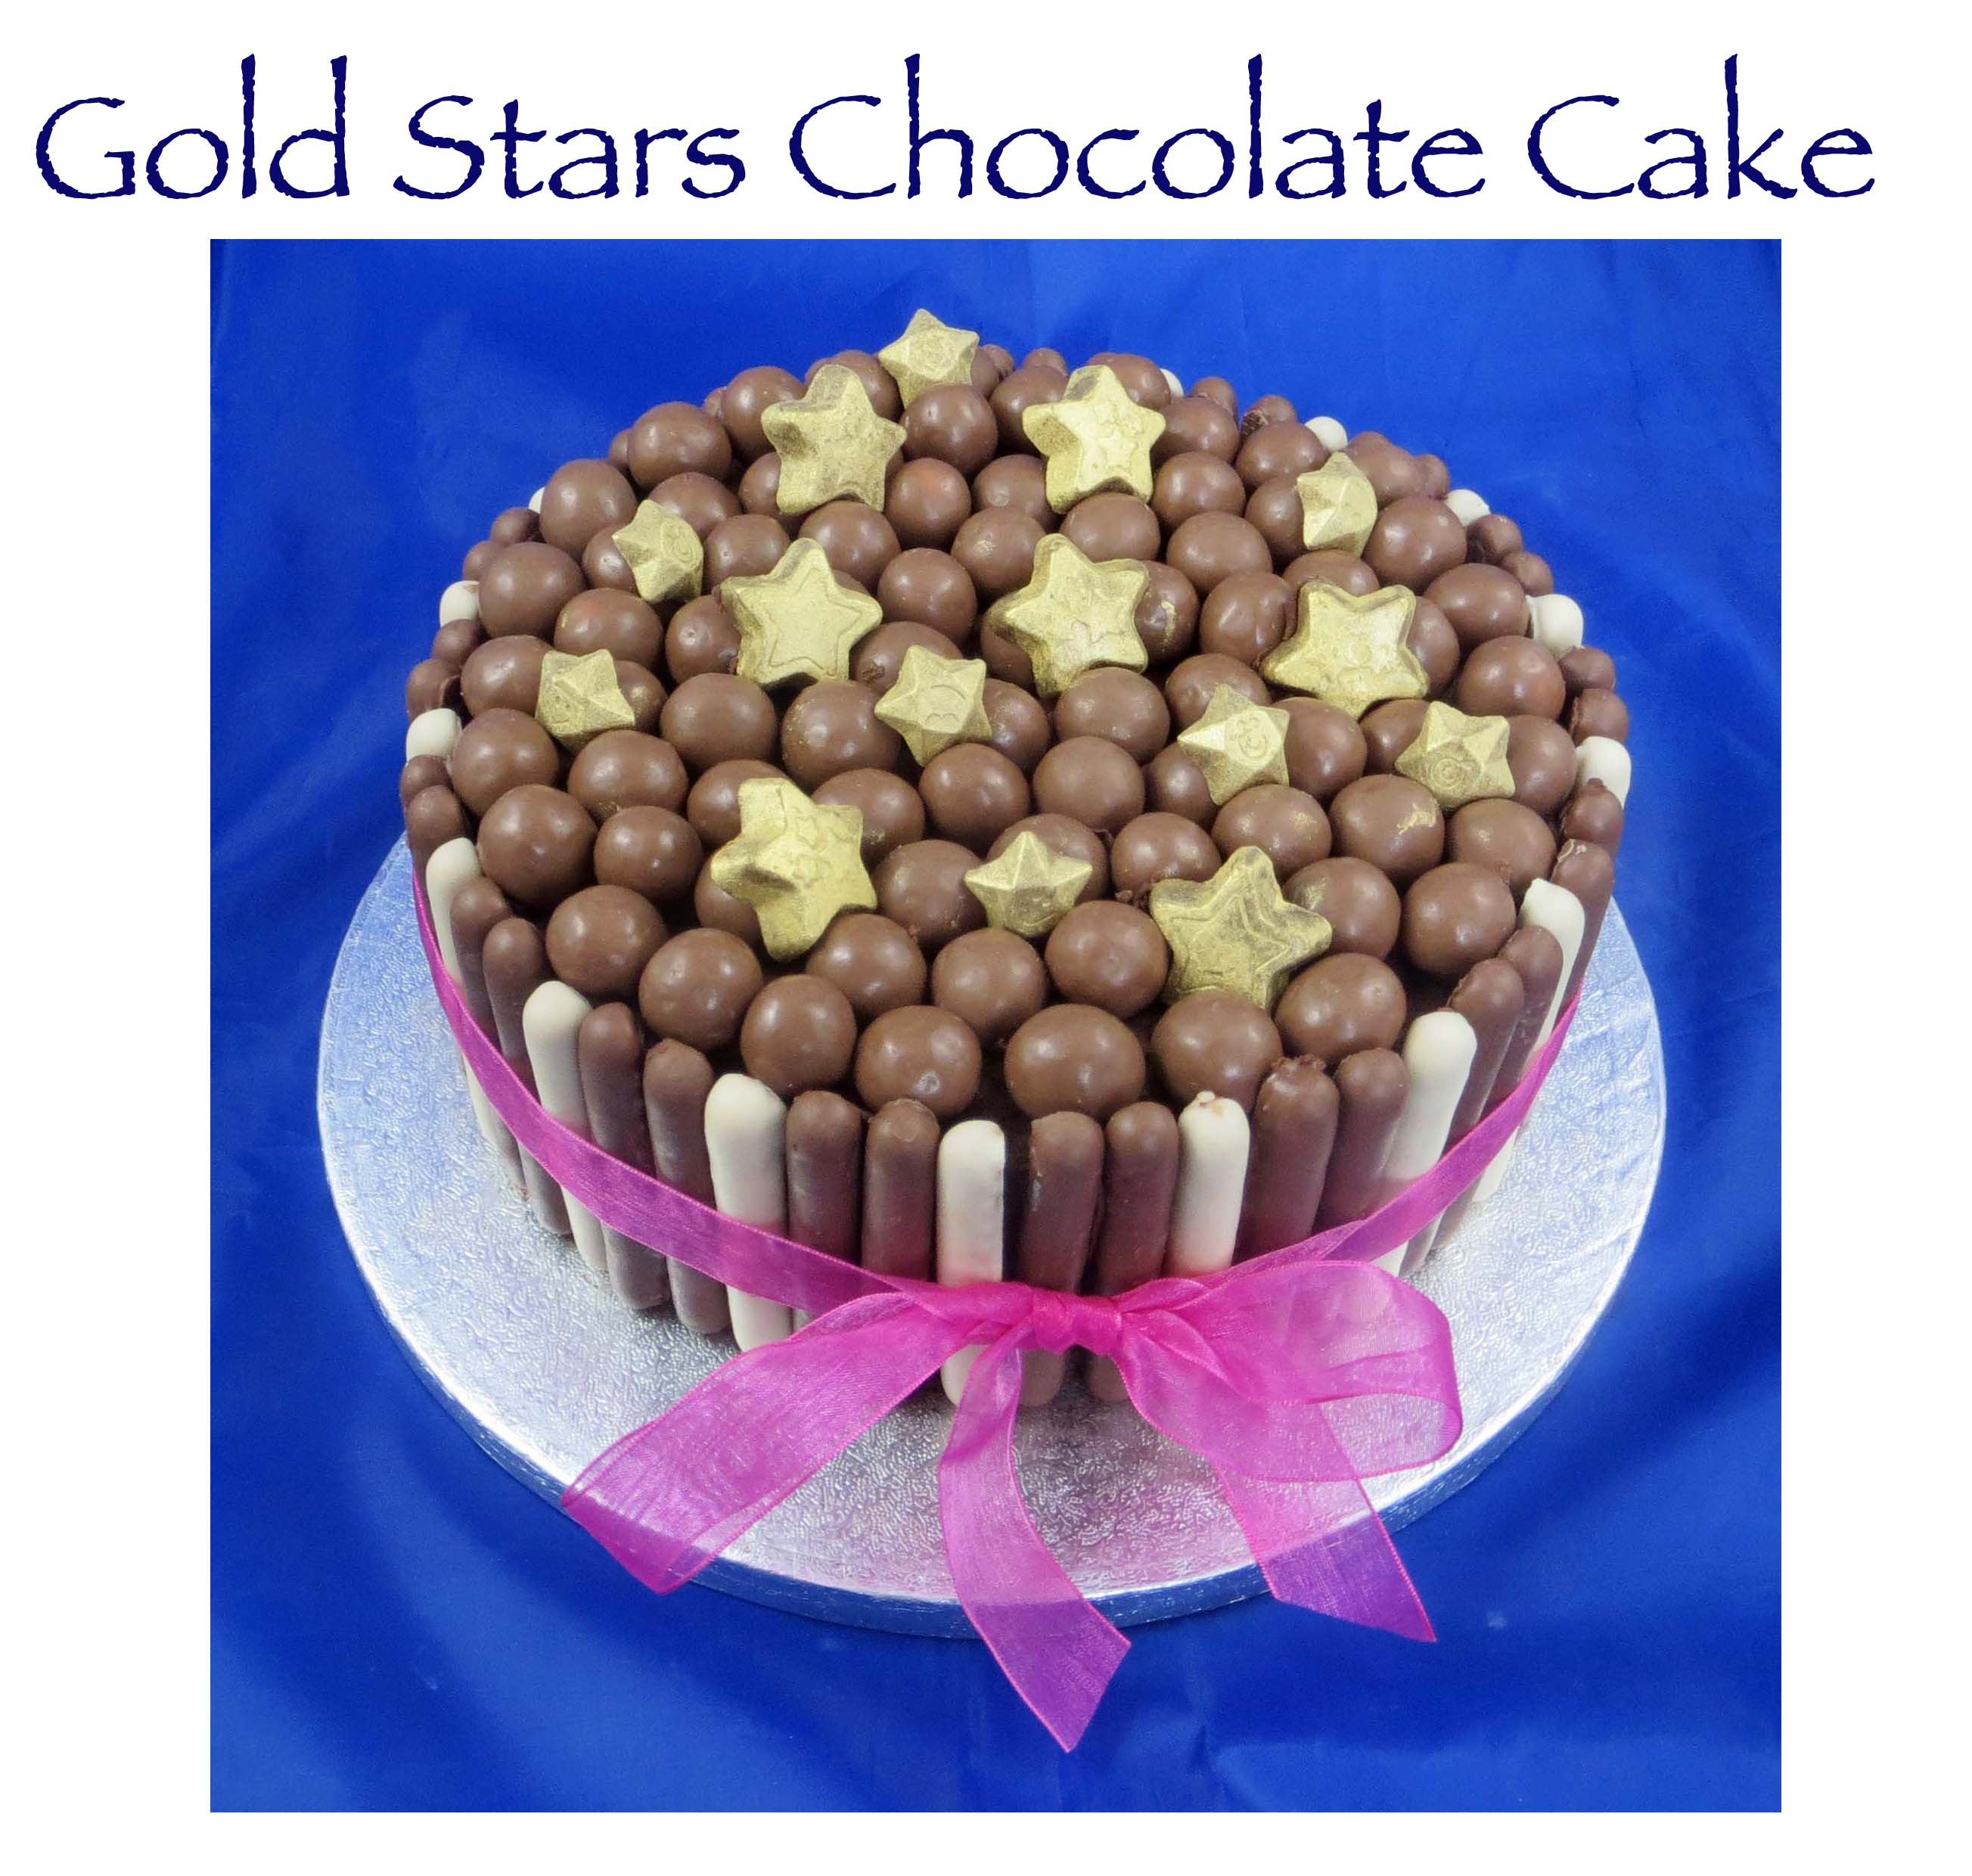 Gold Stars Chocolate Cake